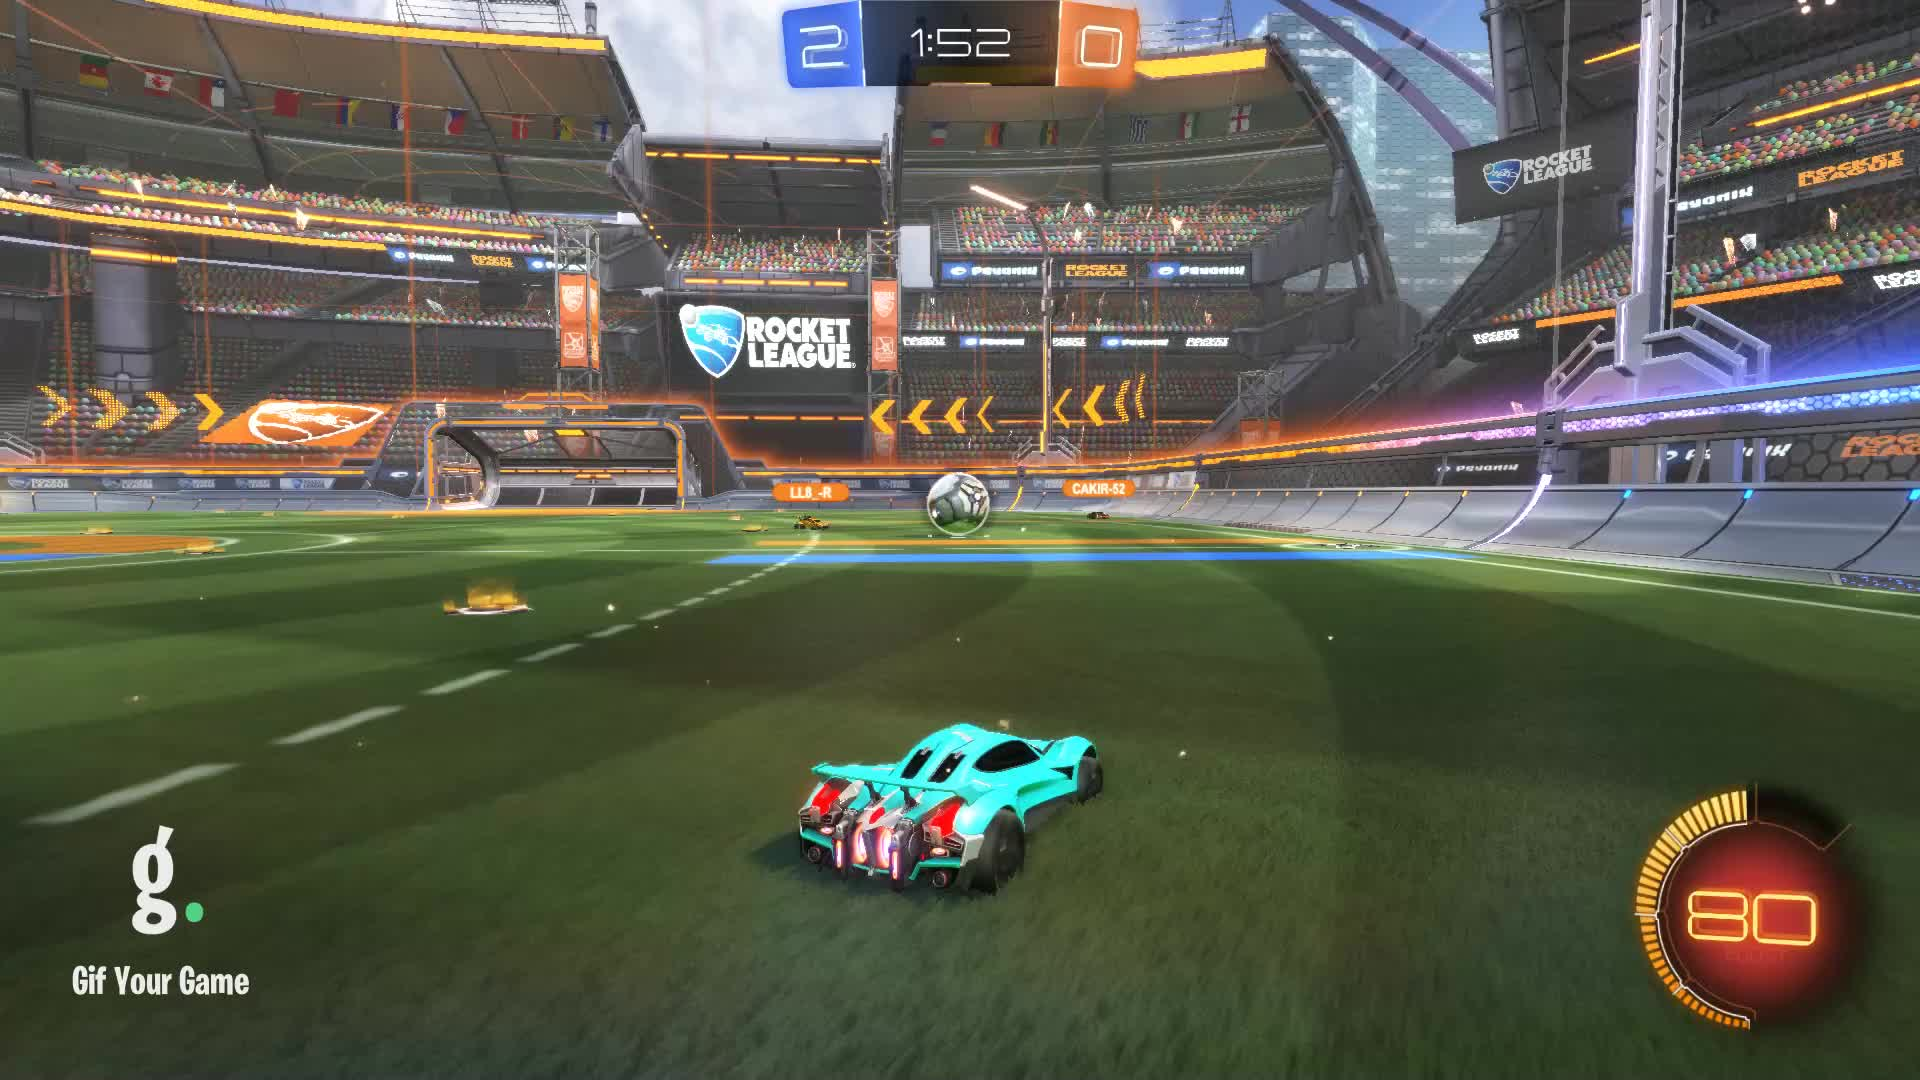 Gif Your Game, GifYourGame, Goal, Litro, Rocket League, RocketLeague, Goal 3: Litro GIFs